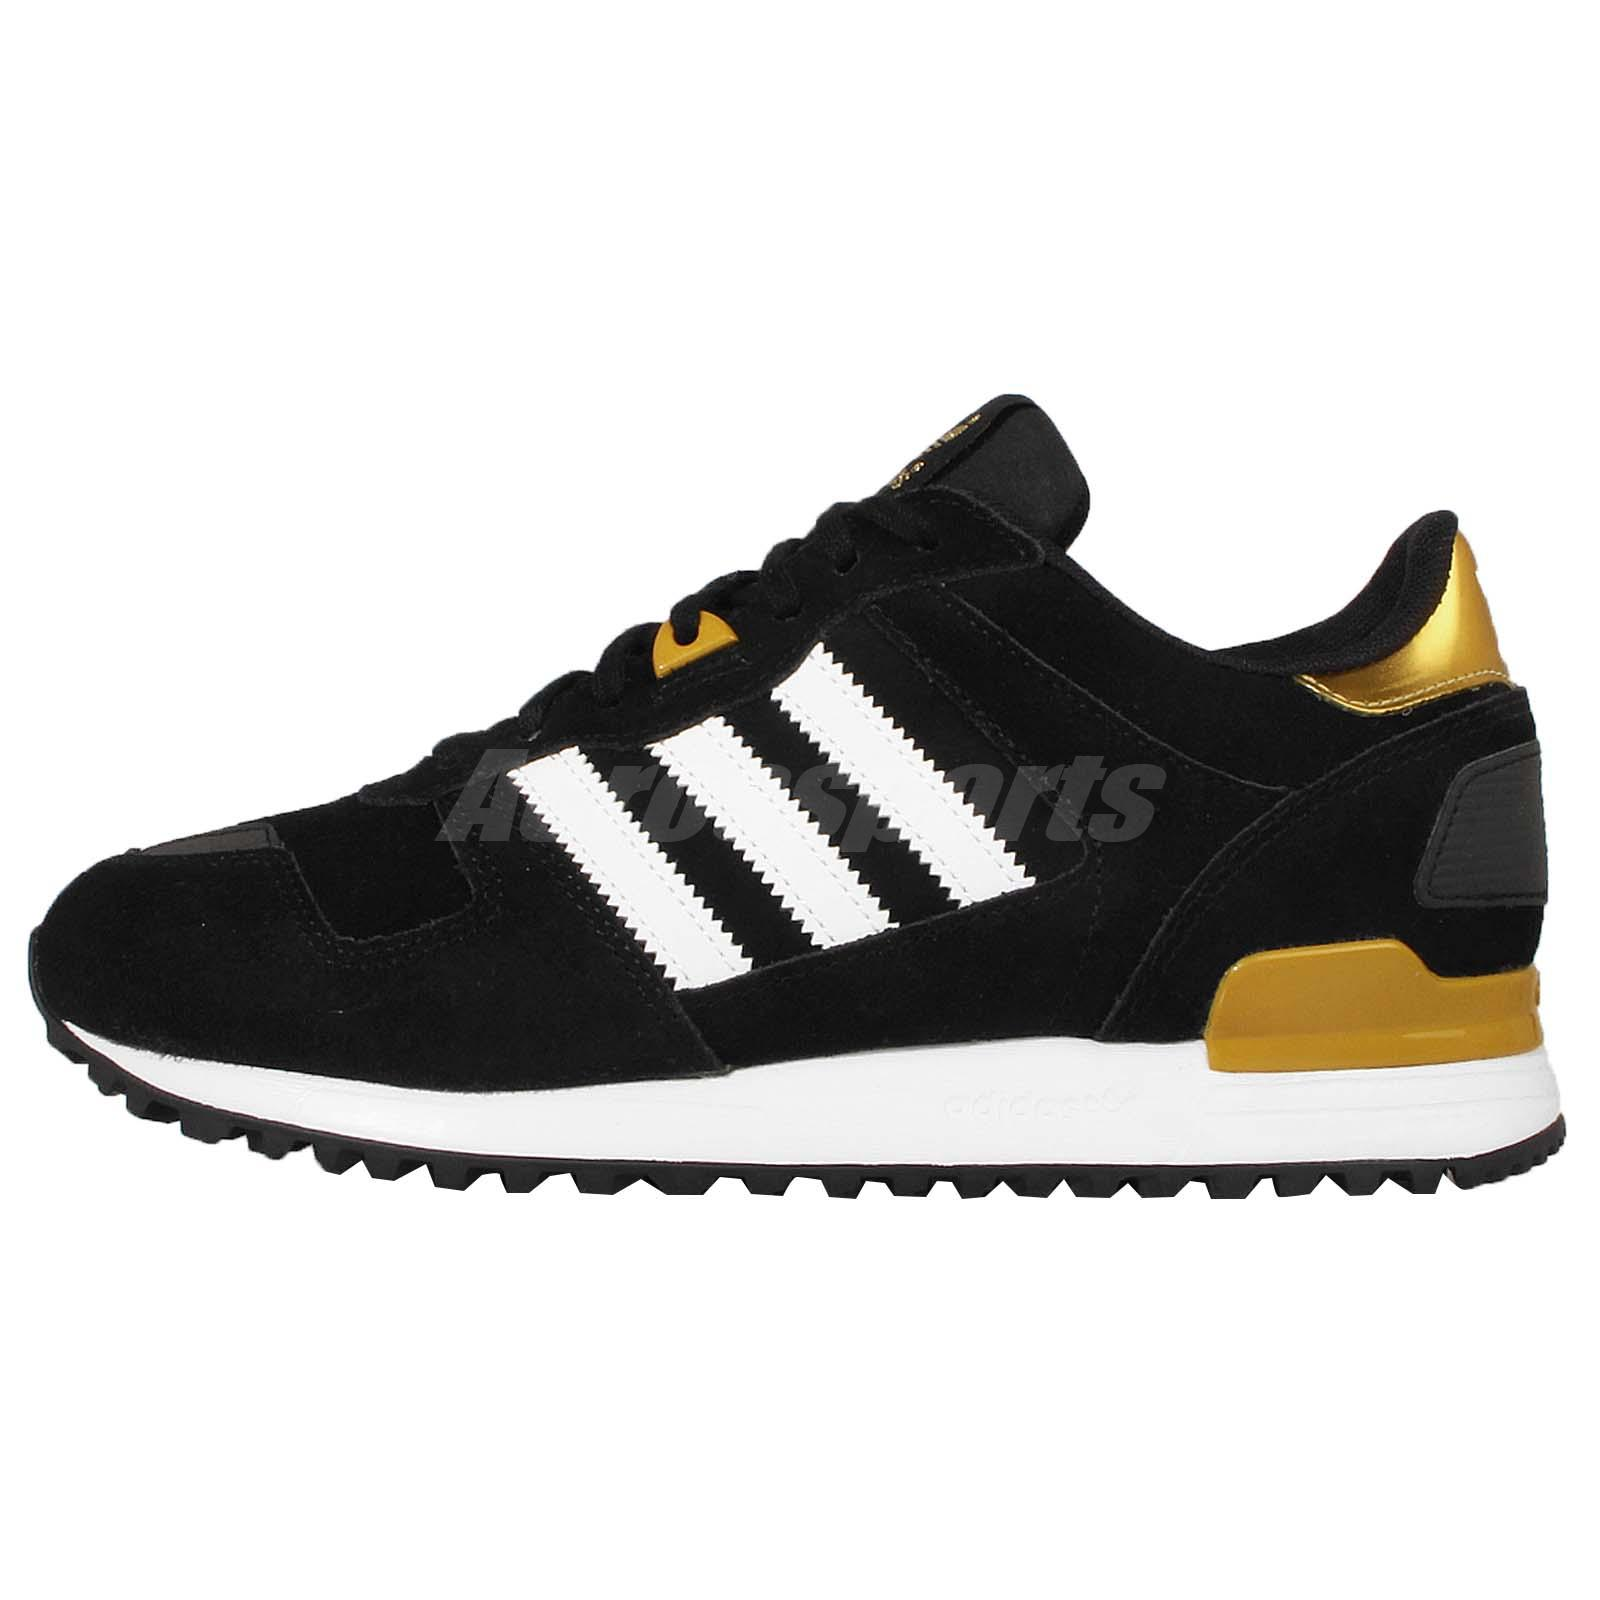 Adidas Shoes Women Black And Gold